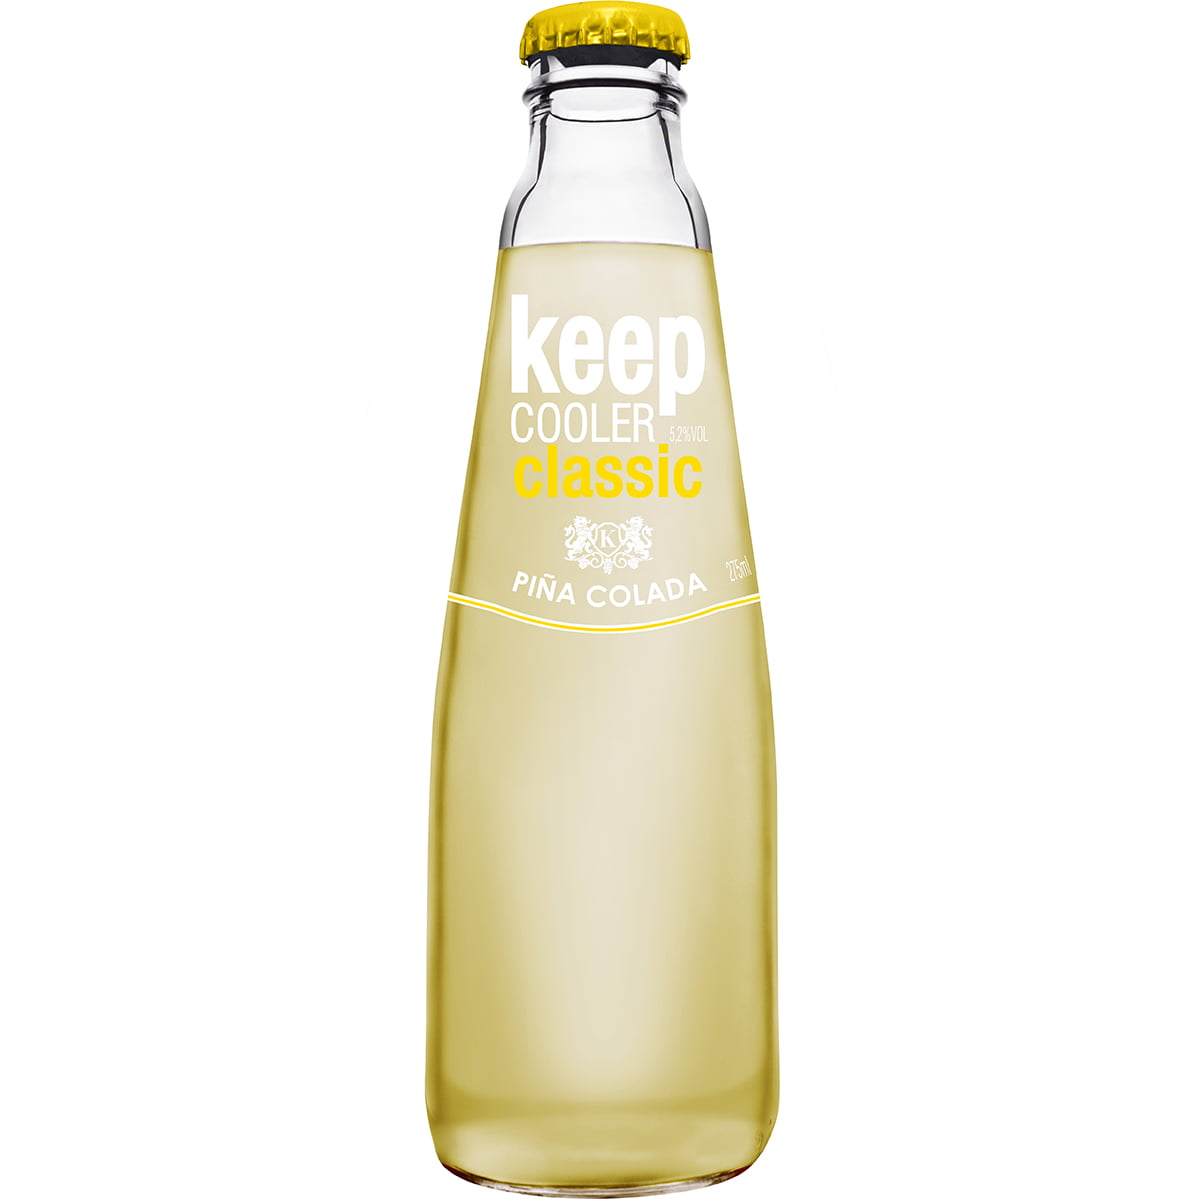 KEEP COOLER CLASSIC PINA COLADA 6X275 ML